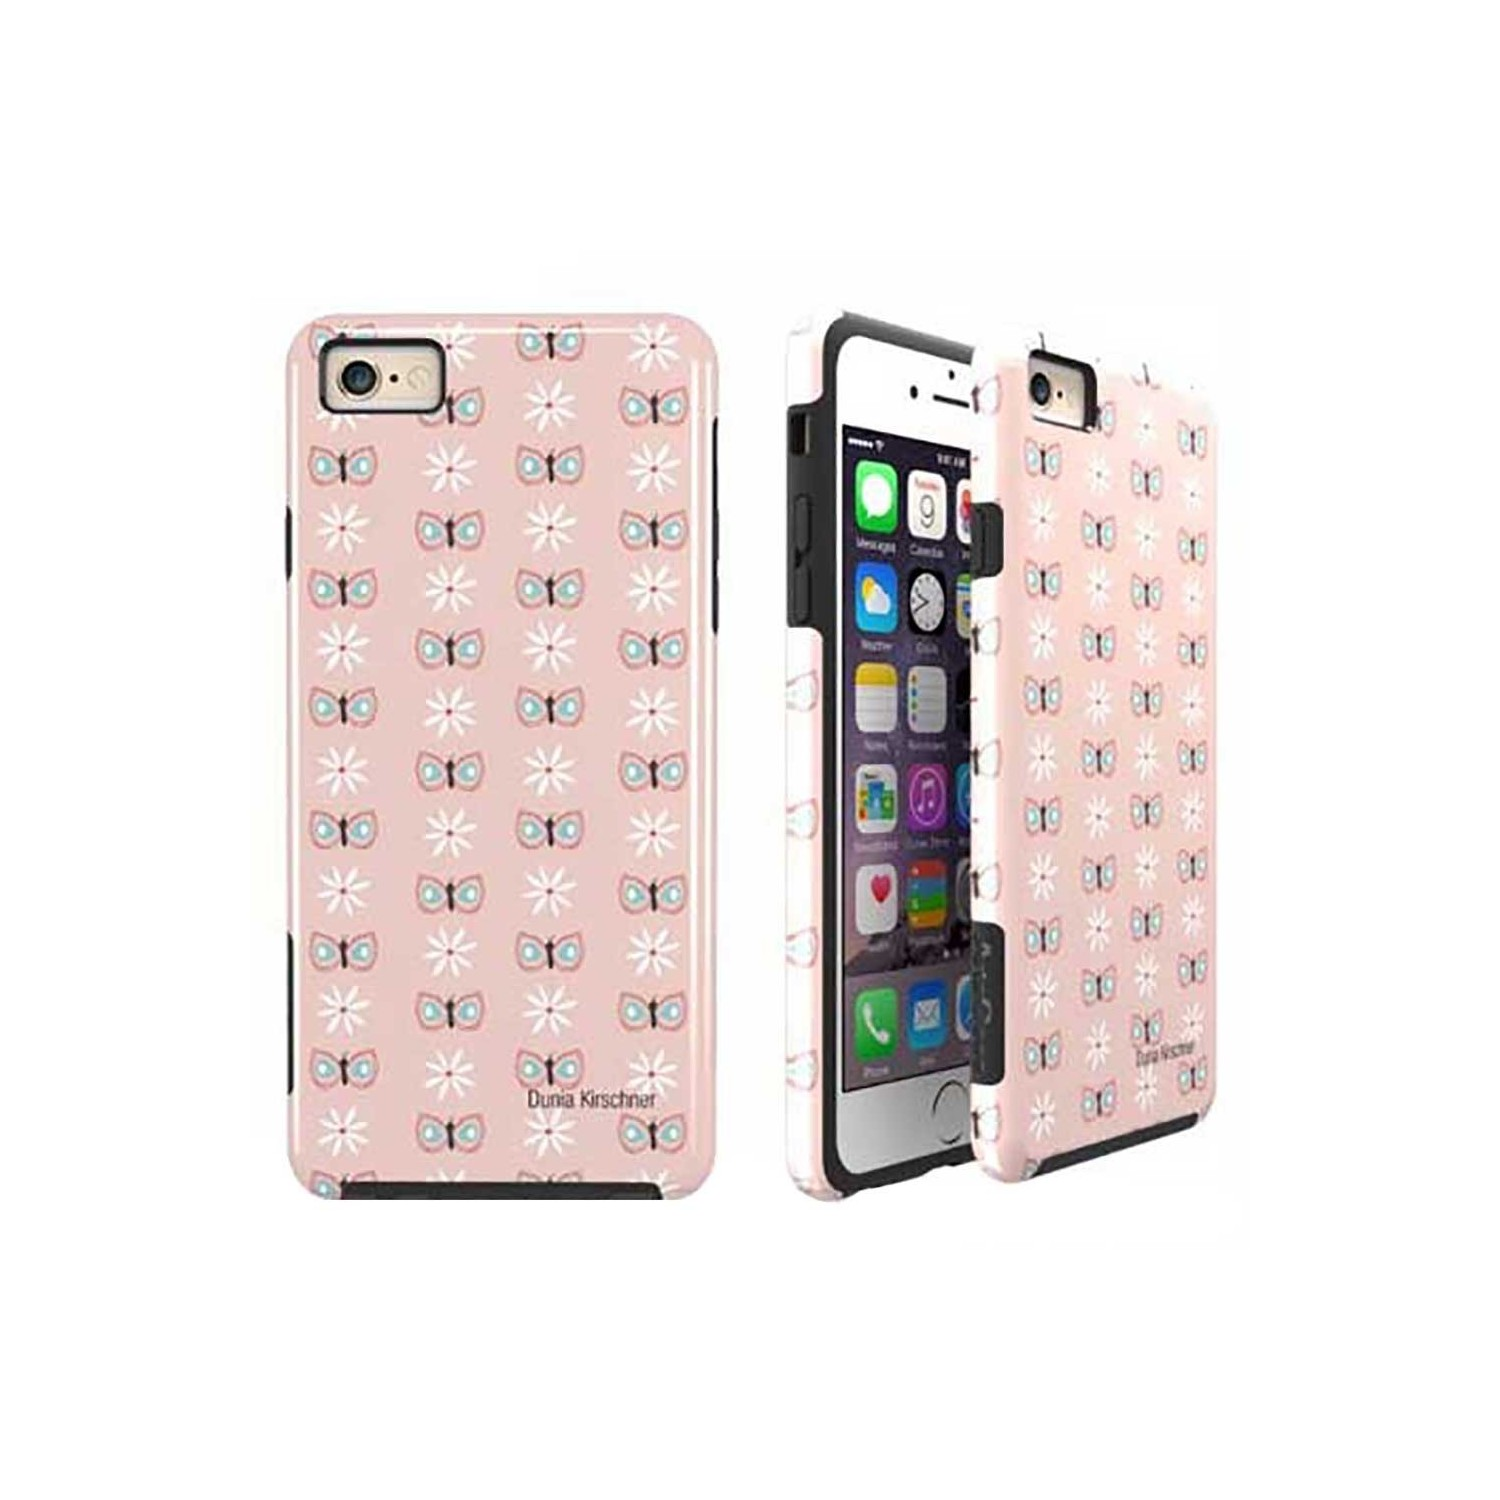 Case -  ArtsCase StrongFit for iPhone 6/6s IceCreamButterfly